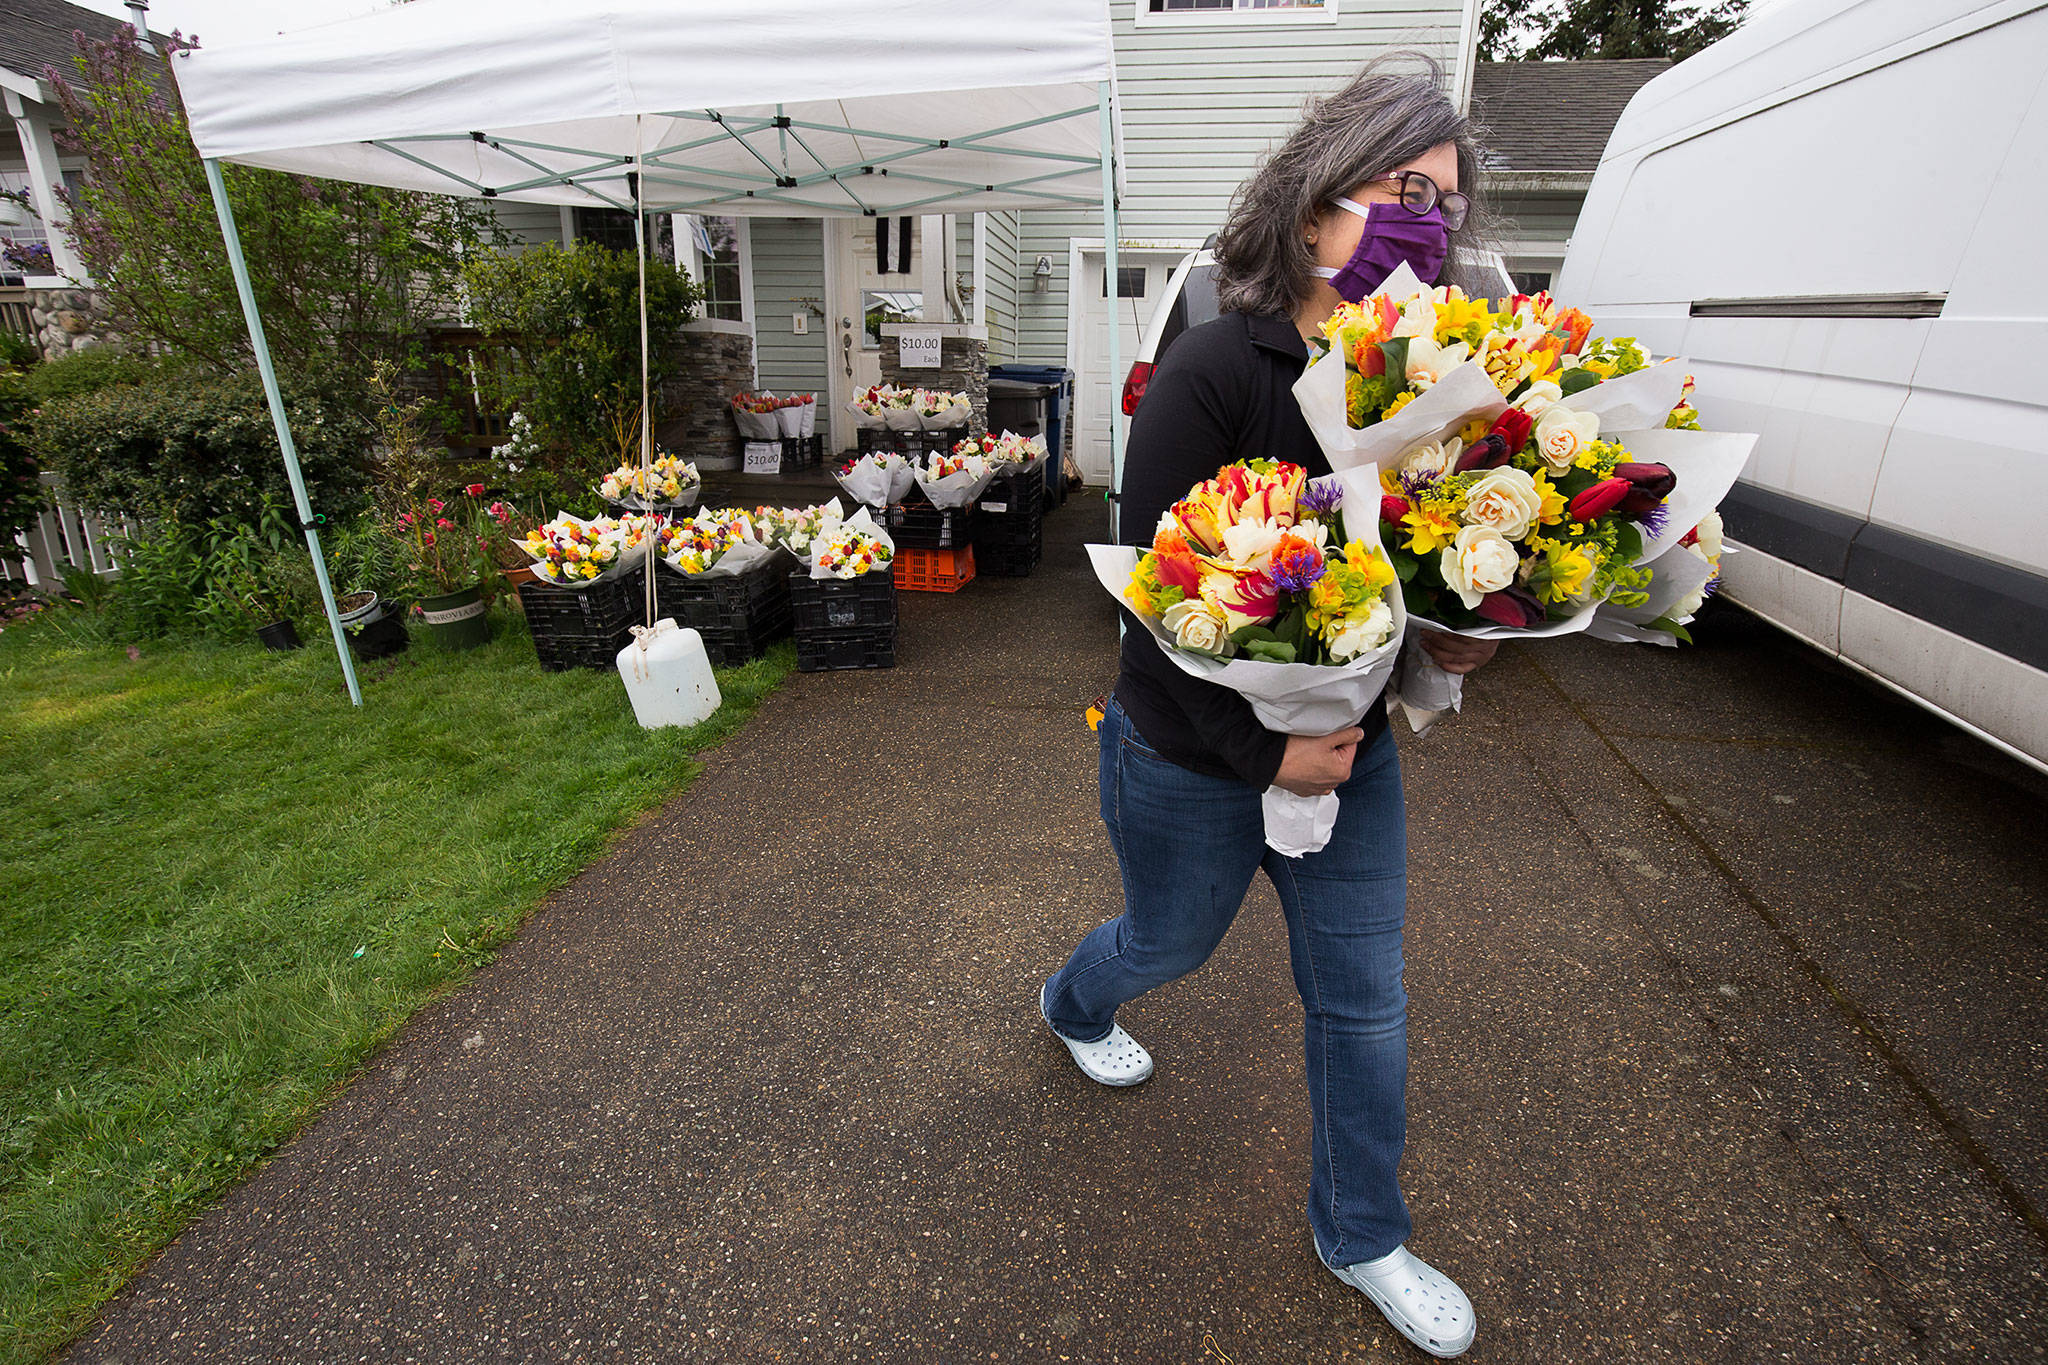 Gina Corpening carries off an armful of bouquets from Teng's Garden sold from the flower farm family's front porch in Everett. Teng's Garden and other flower vendors initially were prohibited from farmers markets because of public health restrictions, but now can sell after the state weighed in. (Andy Bronson / The Herald)